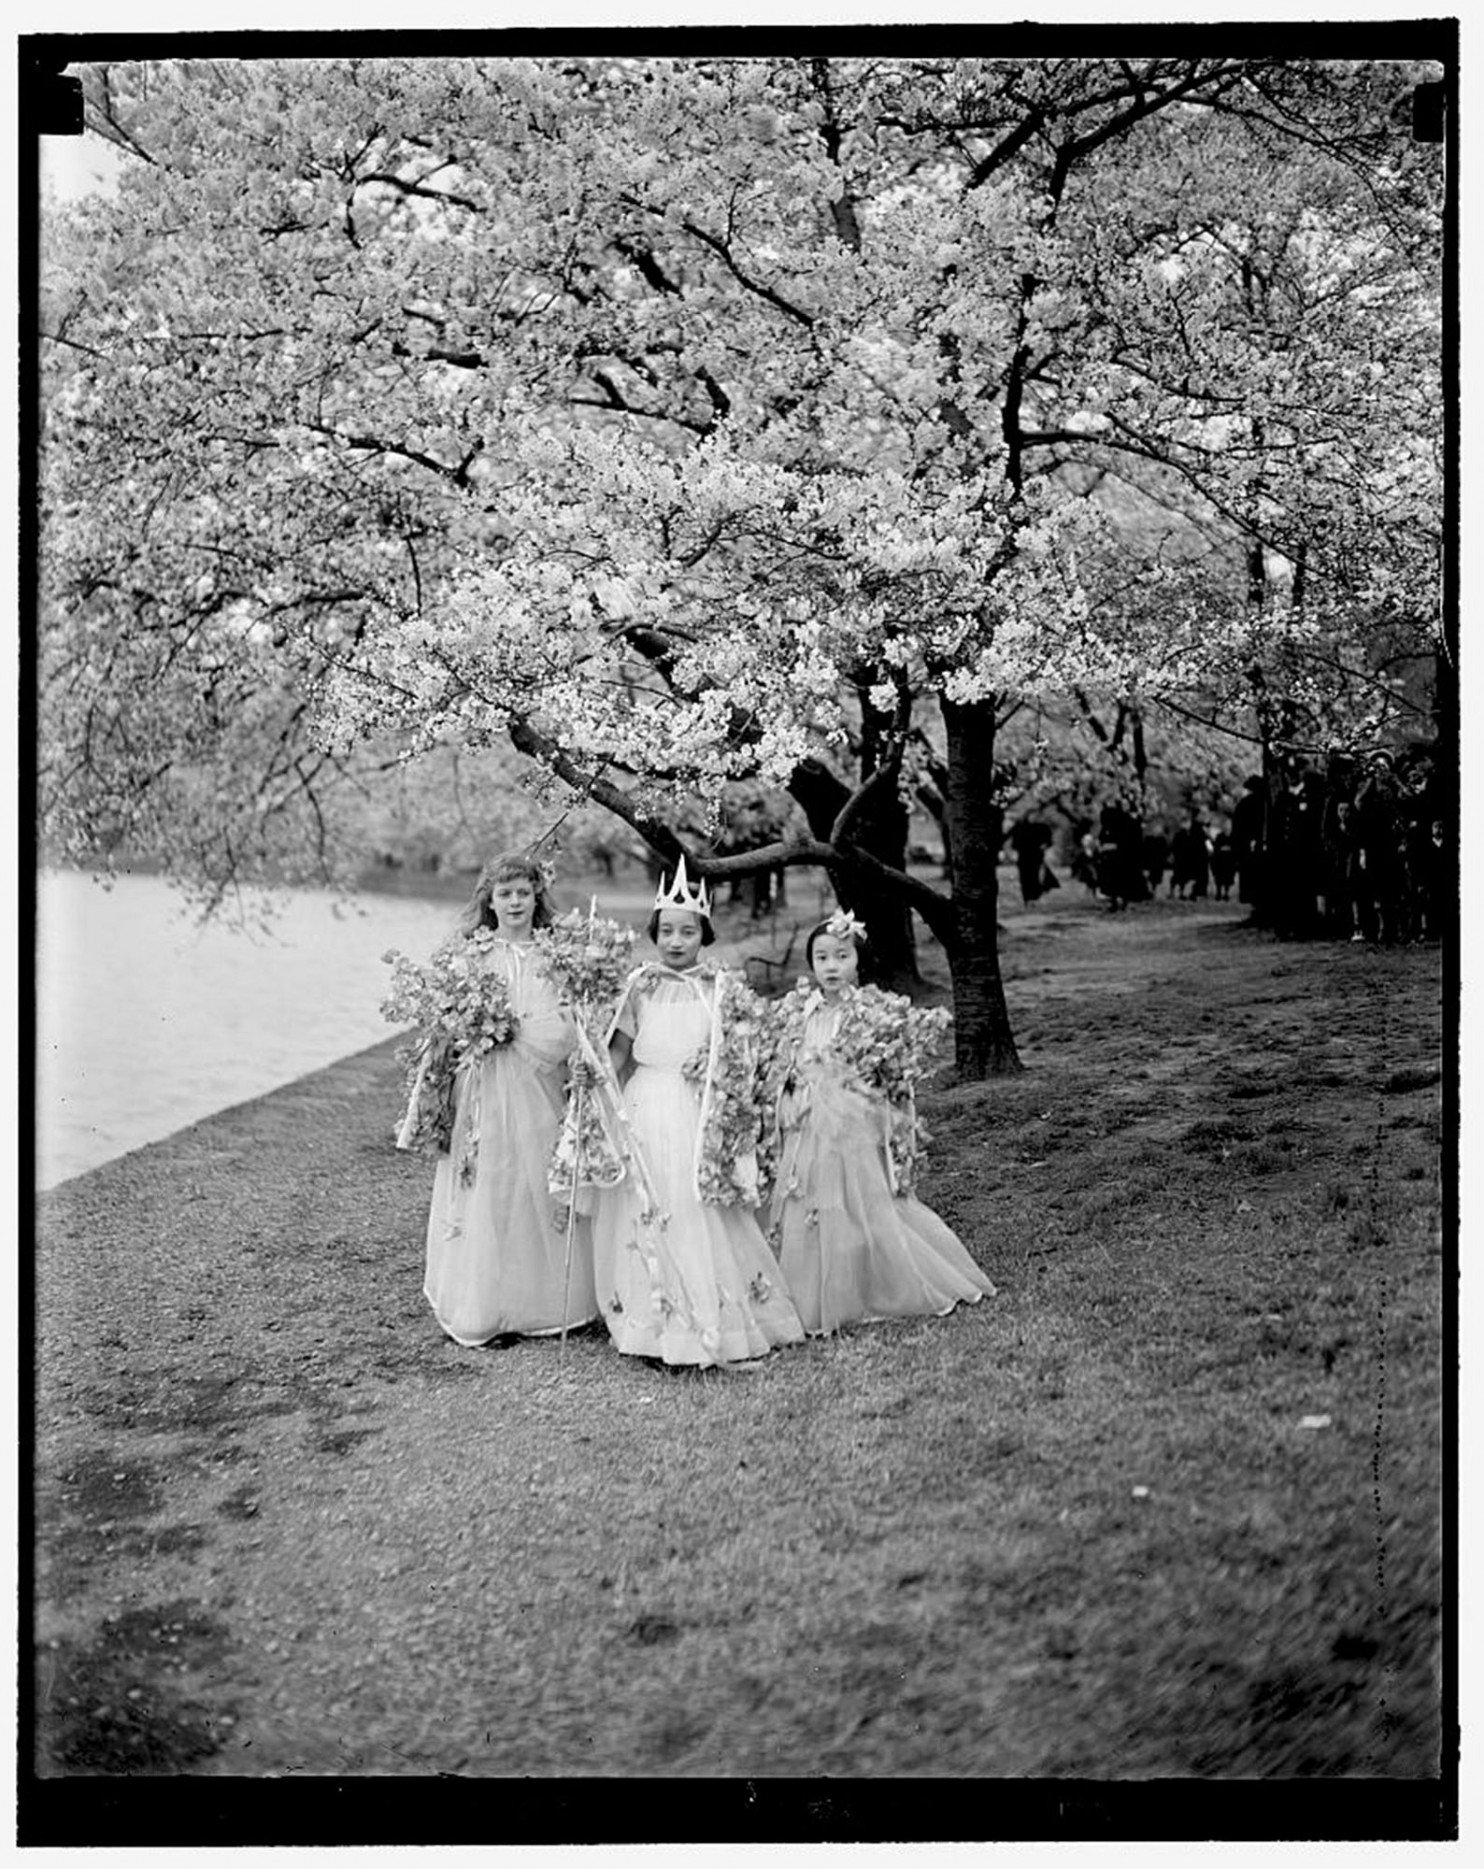 Take a look at this @washingtonpost article 'cherry blossom photography' feat. photos from our collections. https://t.co/S44rWLHu7Y https://t.co/JGwh6kLgoq